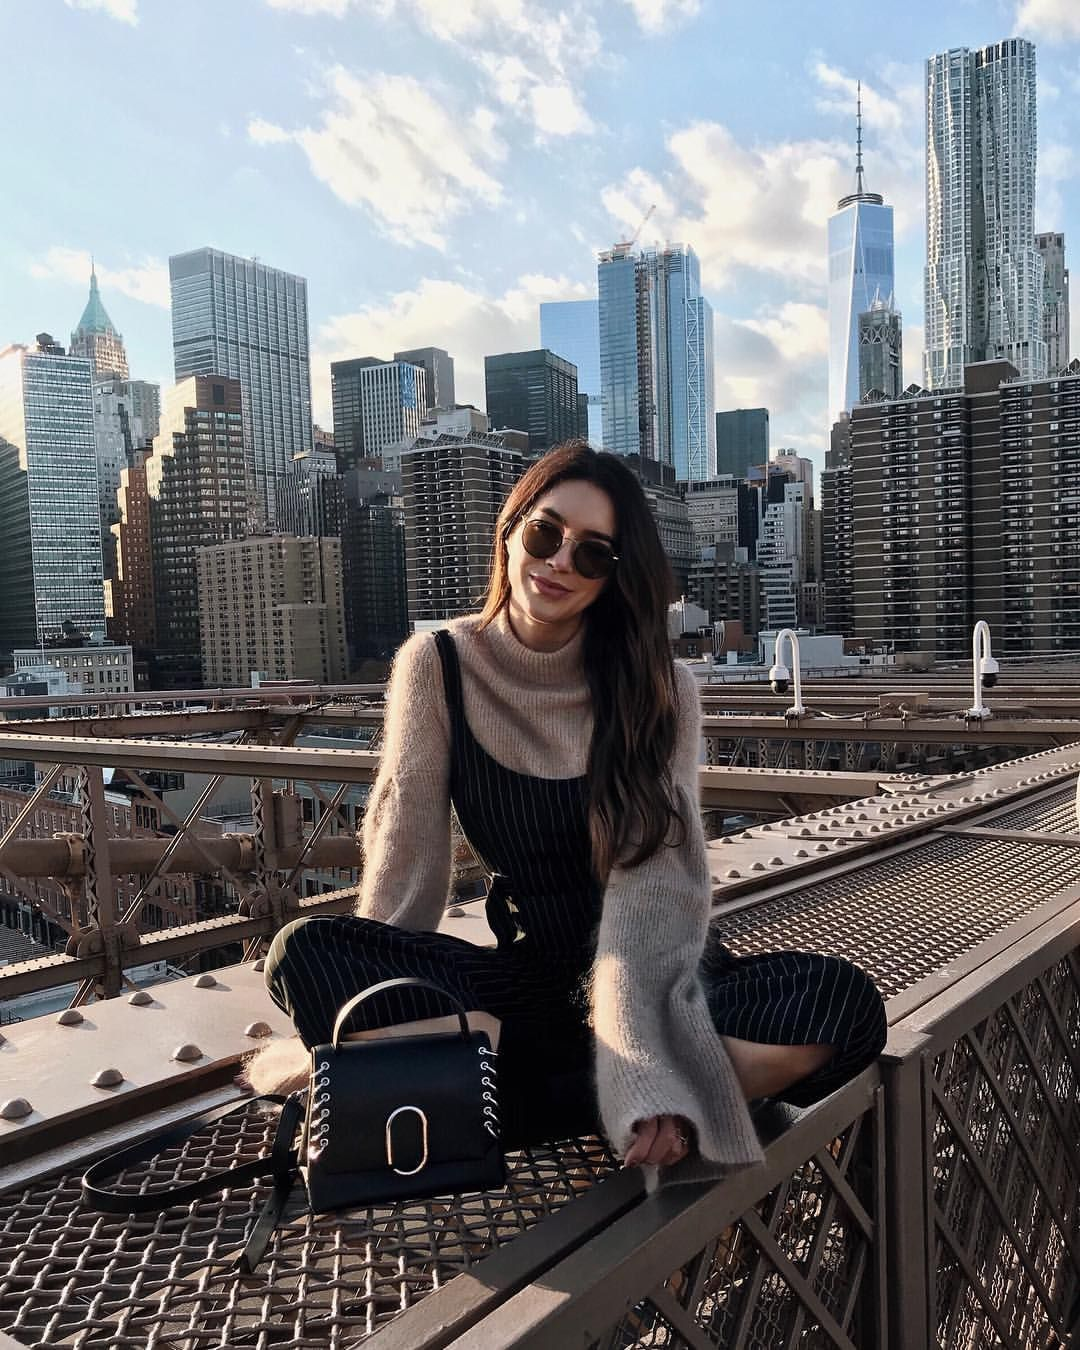 "Brittany Xavier on Instagram: ""Such a gorgeous day in the city 🏙"", #Brittany #City #Day #gorgeous #Instagram #newyorkwinter #tagskey #Xavier"